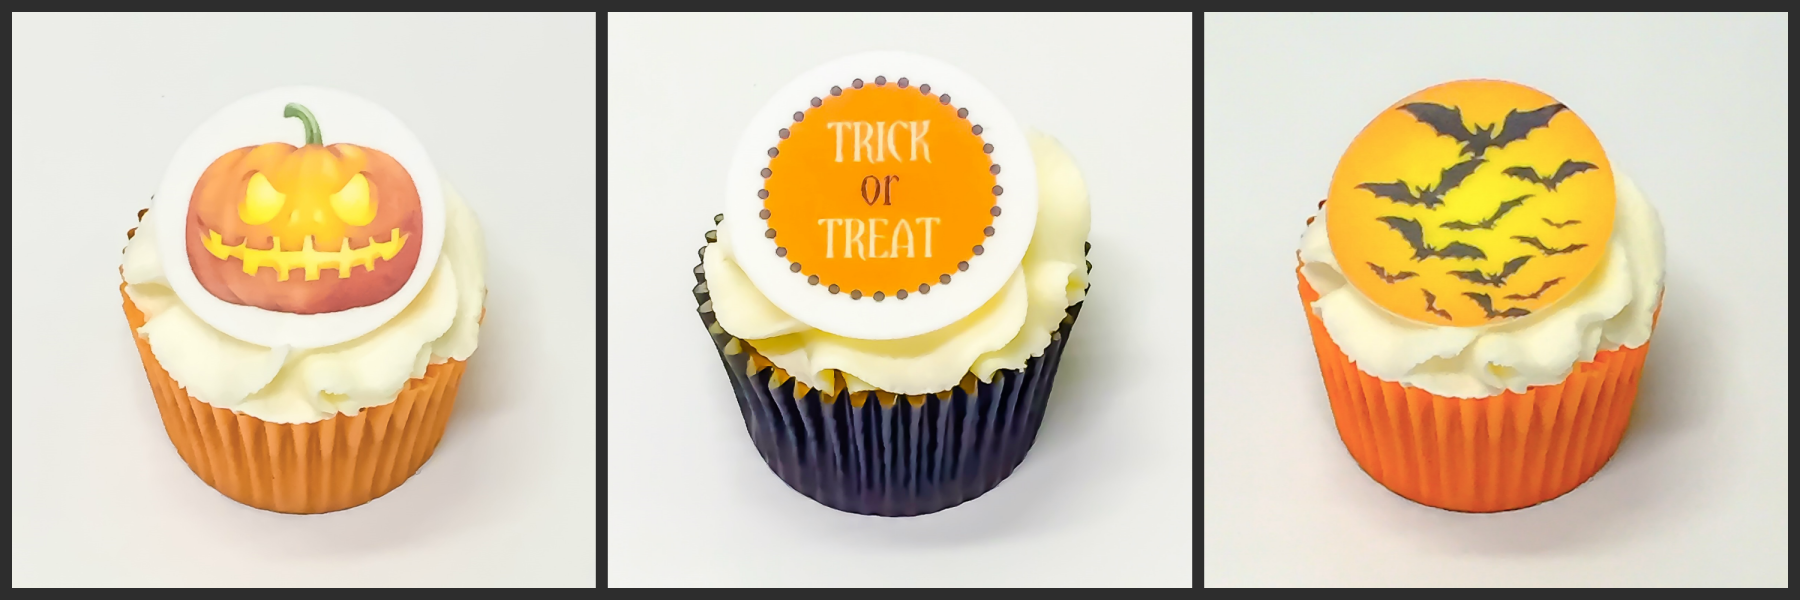 Trick or Treat cupcake toppers for Halloween